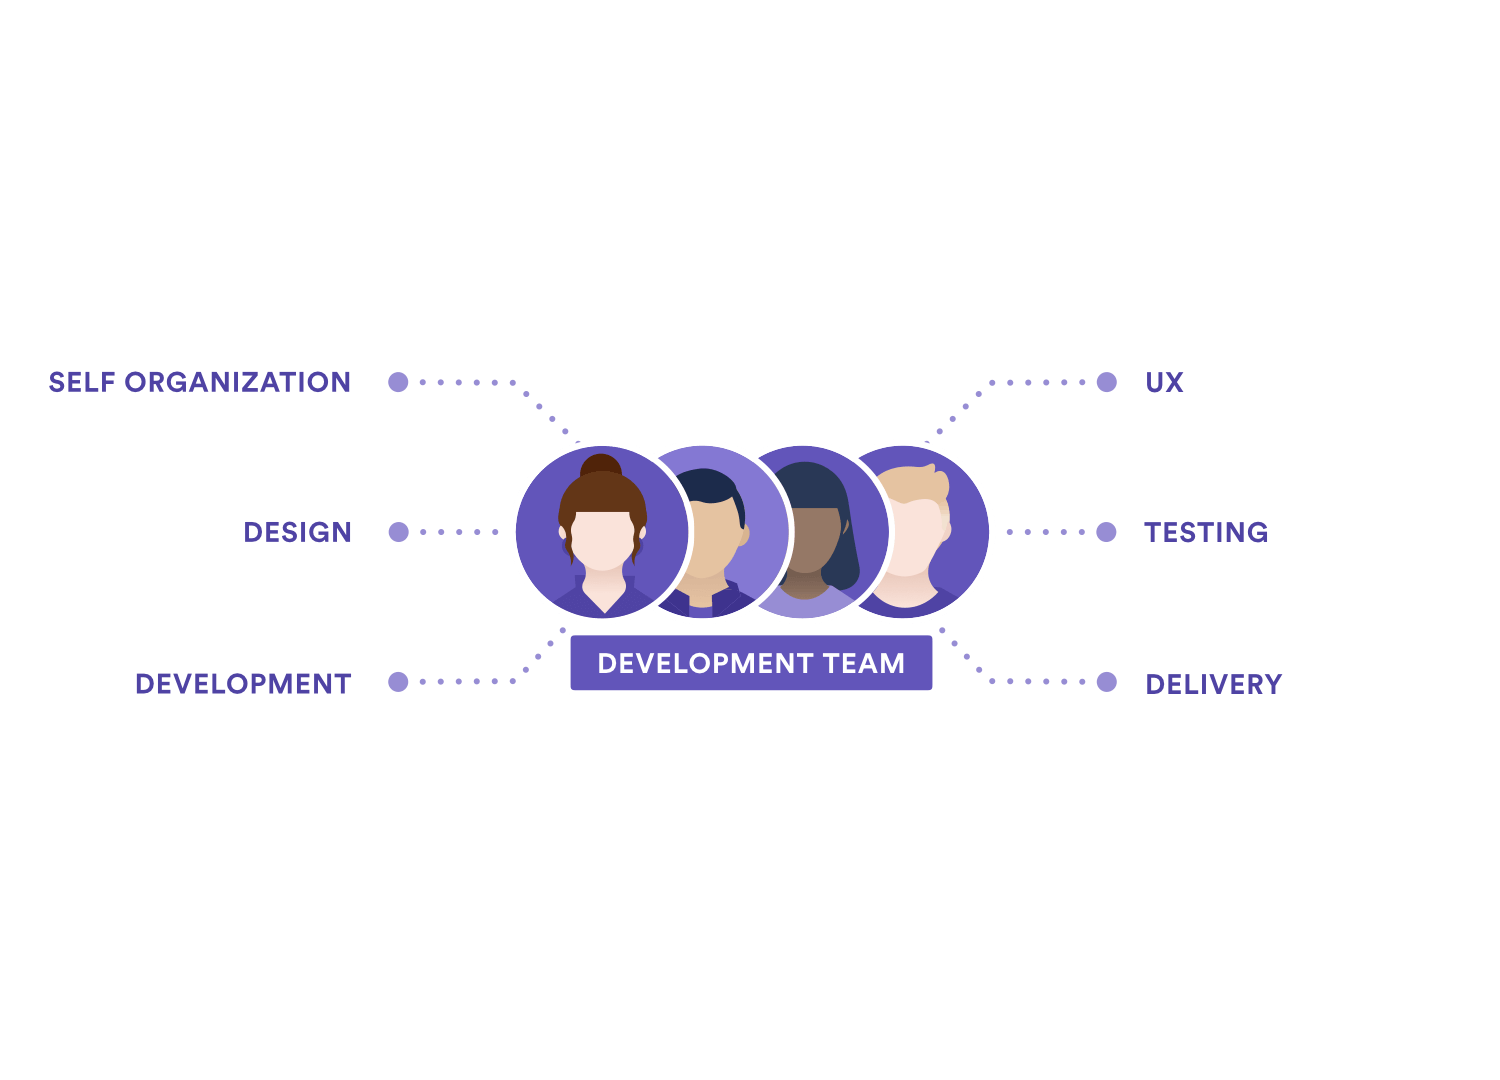 A diagram showing the development team's responsibilities: Self organization, design, development, UX, testing, deployment.